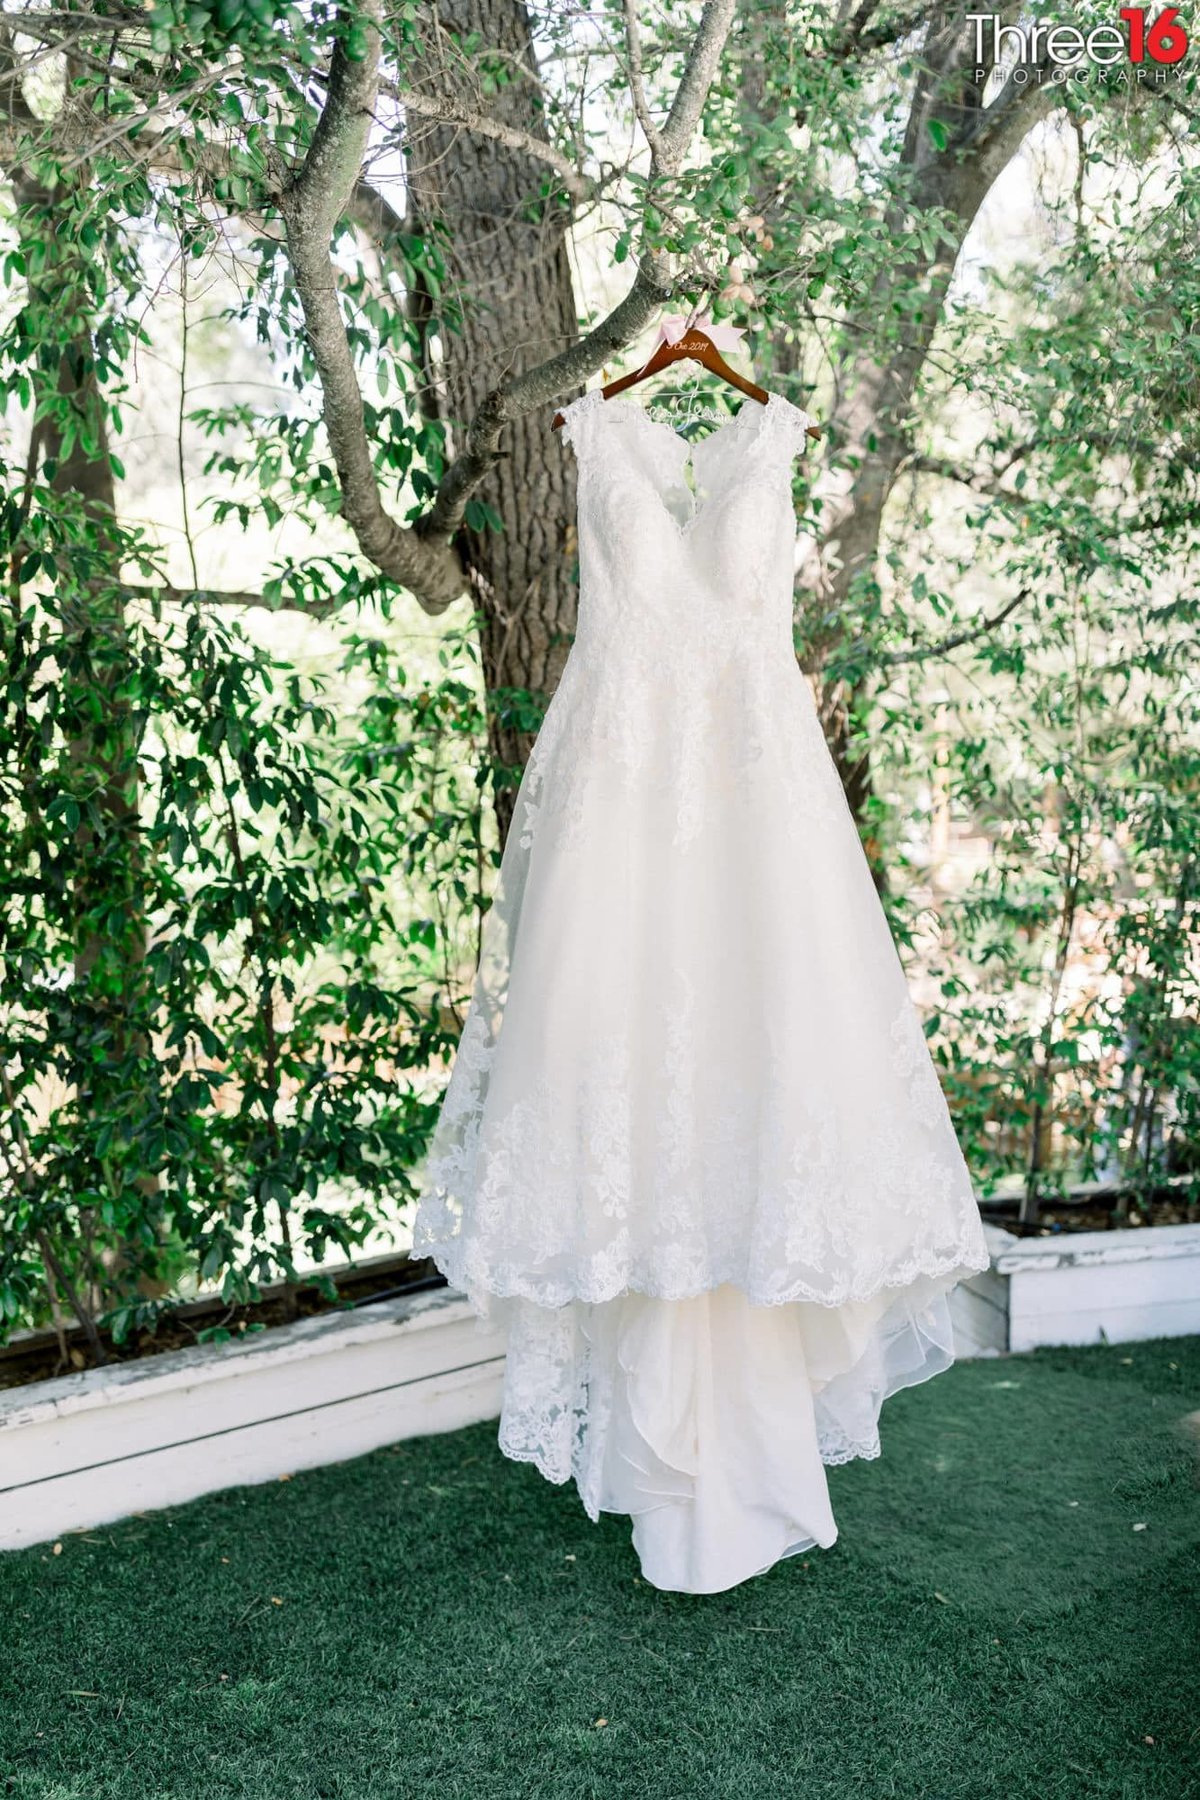 Wedding gown hanging from a tree at Calamigos Ranch in Malibu, CA